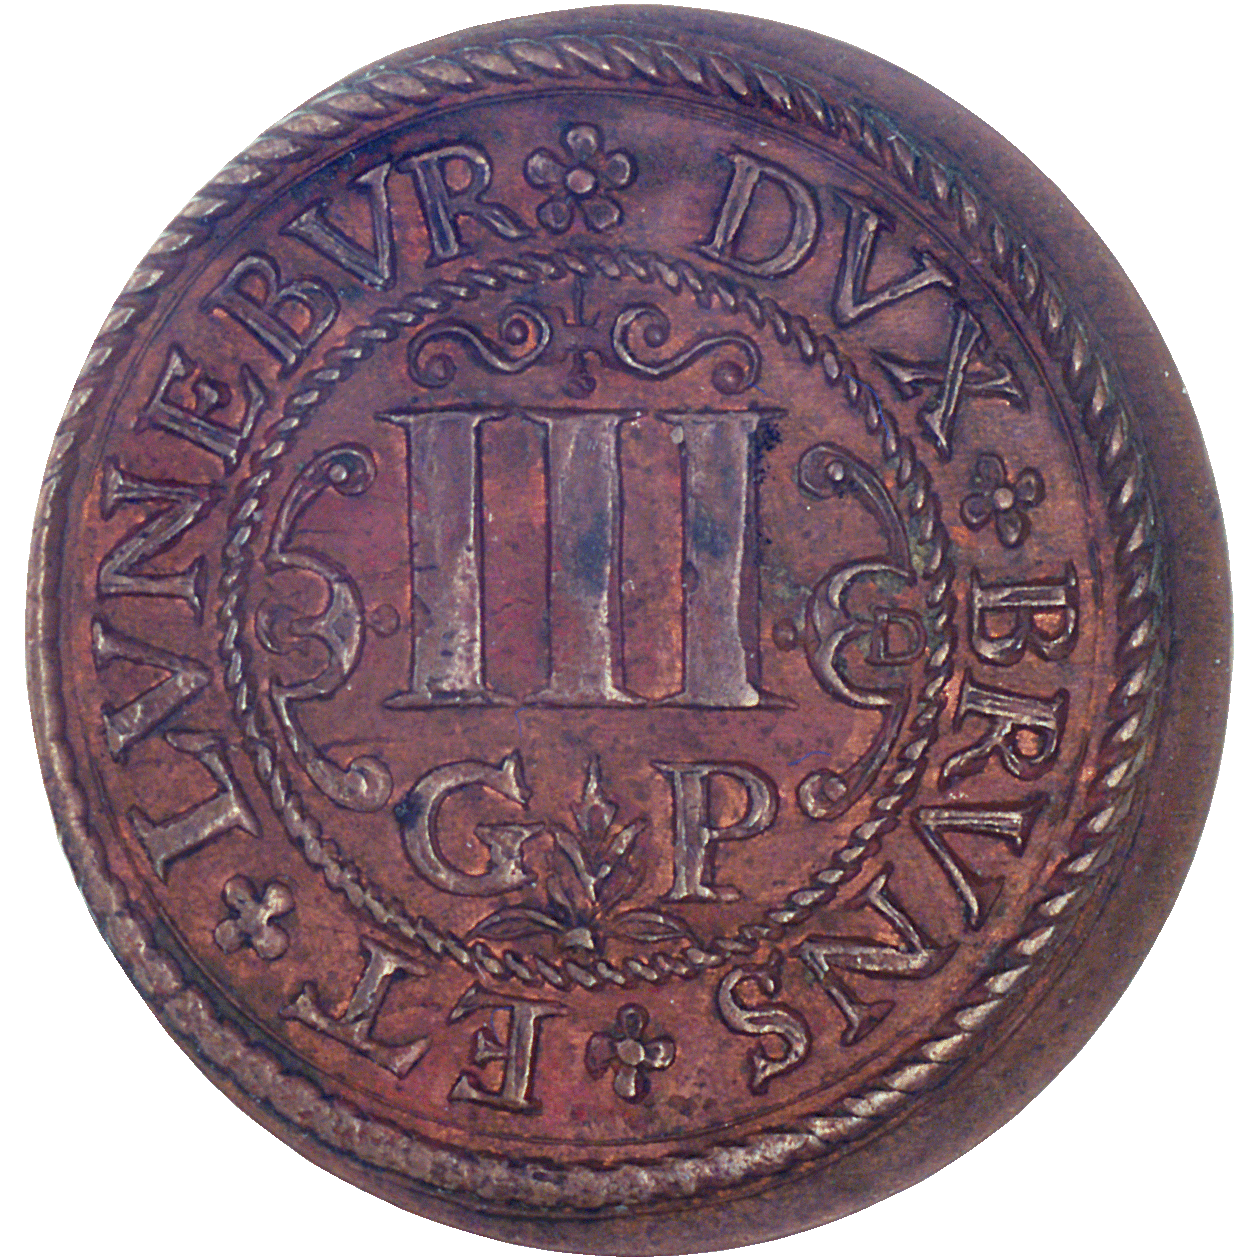 Holy Roman Empire, County of Lüneburg, Bishop Christian of Braunschweig-Lüneburg, Kipper-Dreigutepfennig (reverse)